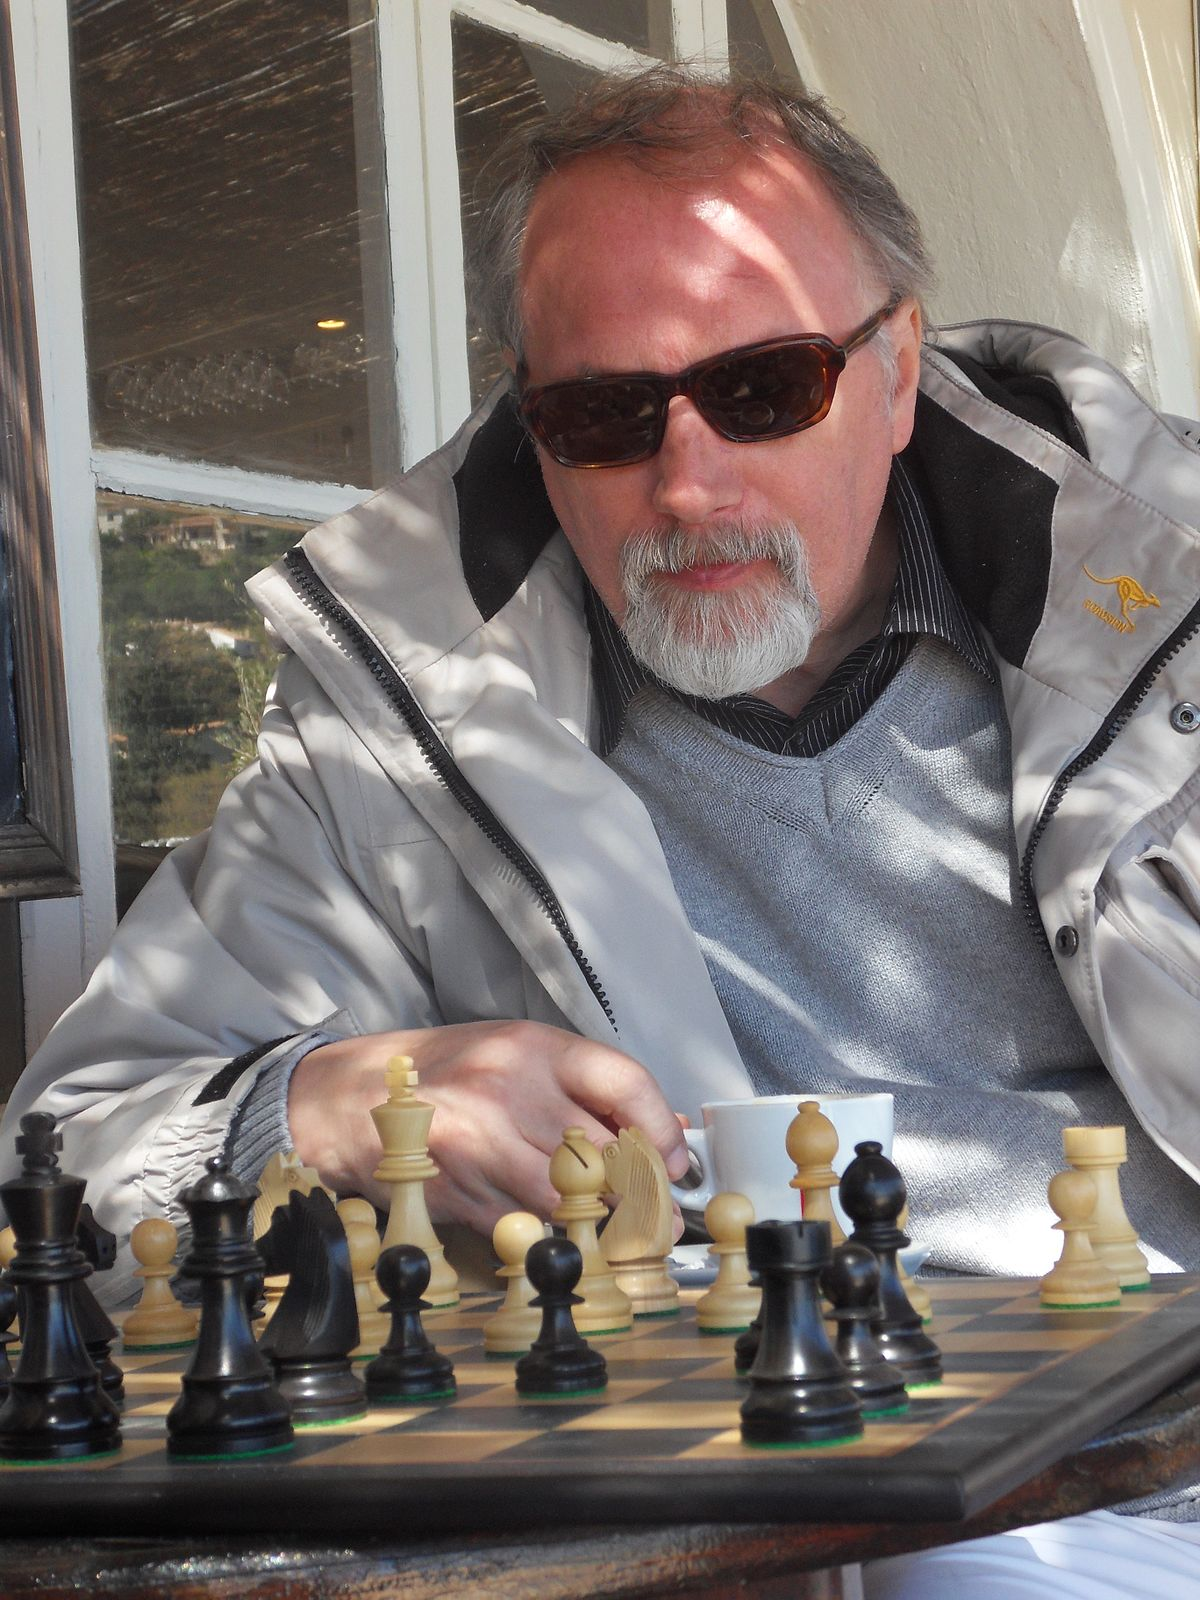 Chess Free Games Chess Players Games Players Free Games And And Chess And Free